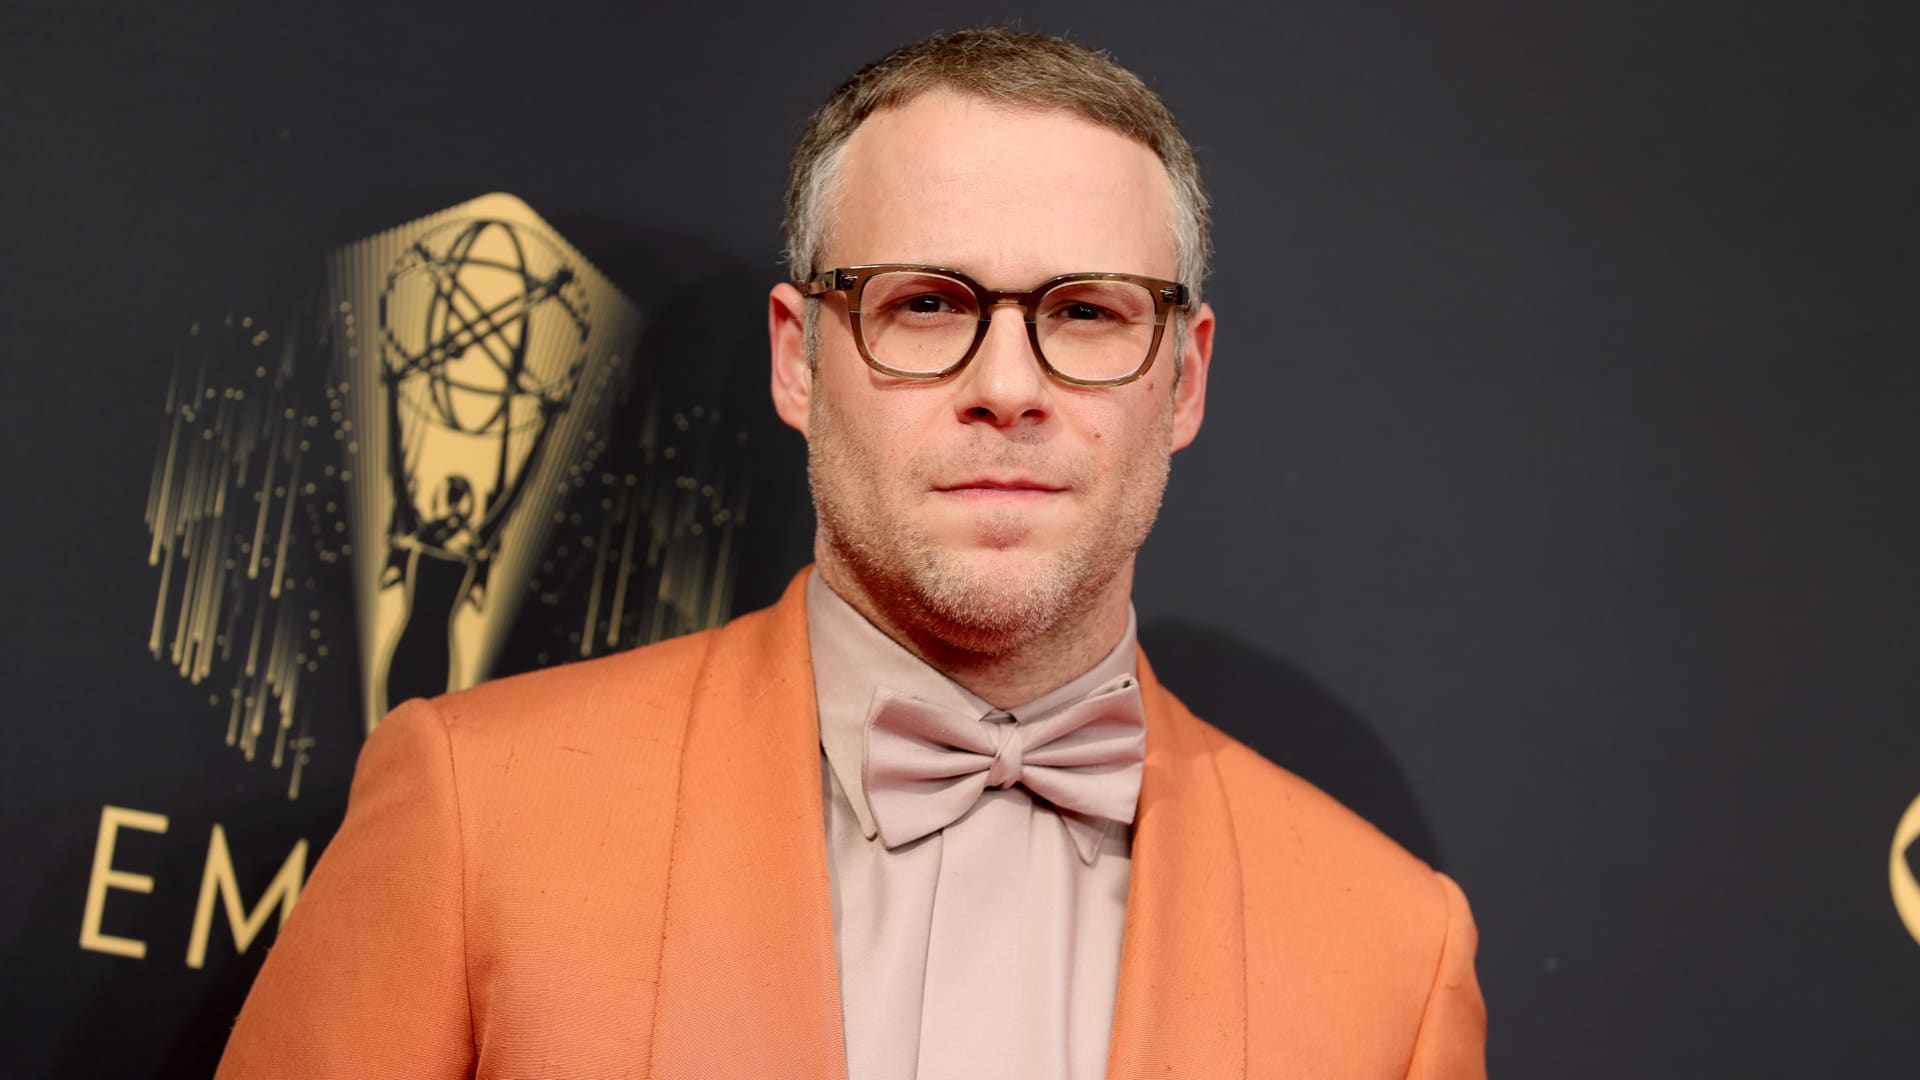 Seth Rogen attends the 73rd Primetime Emmy Awards at L.A. LIVE on September 19, 2021 in Los Angeles, California.